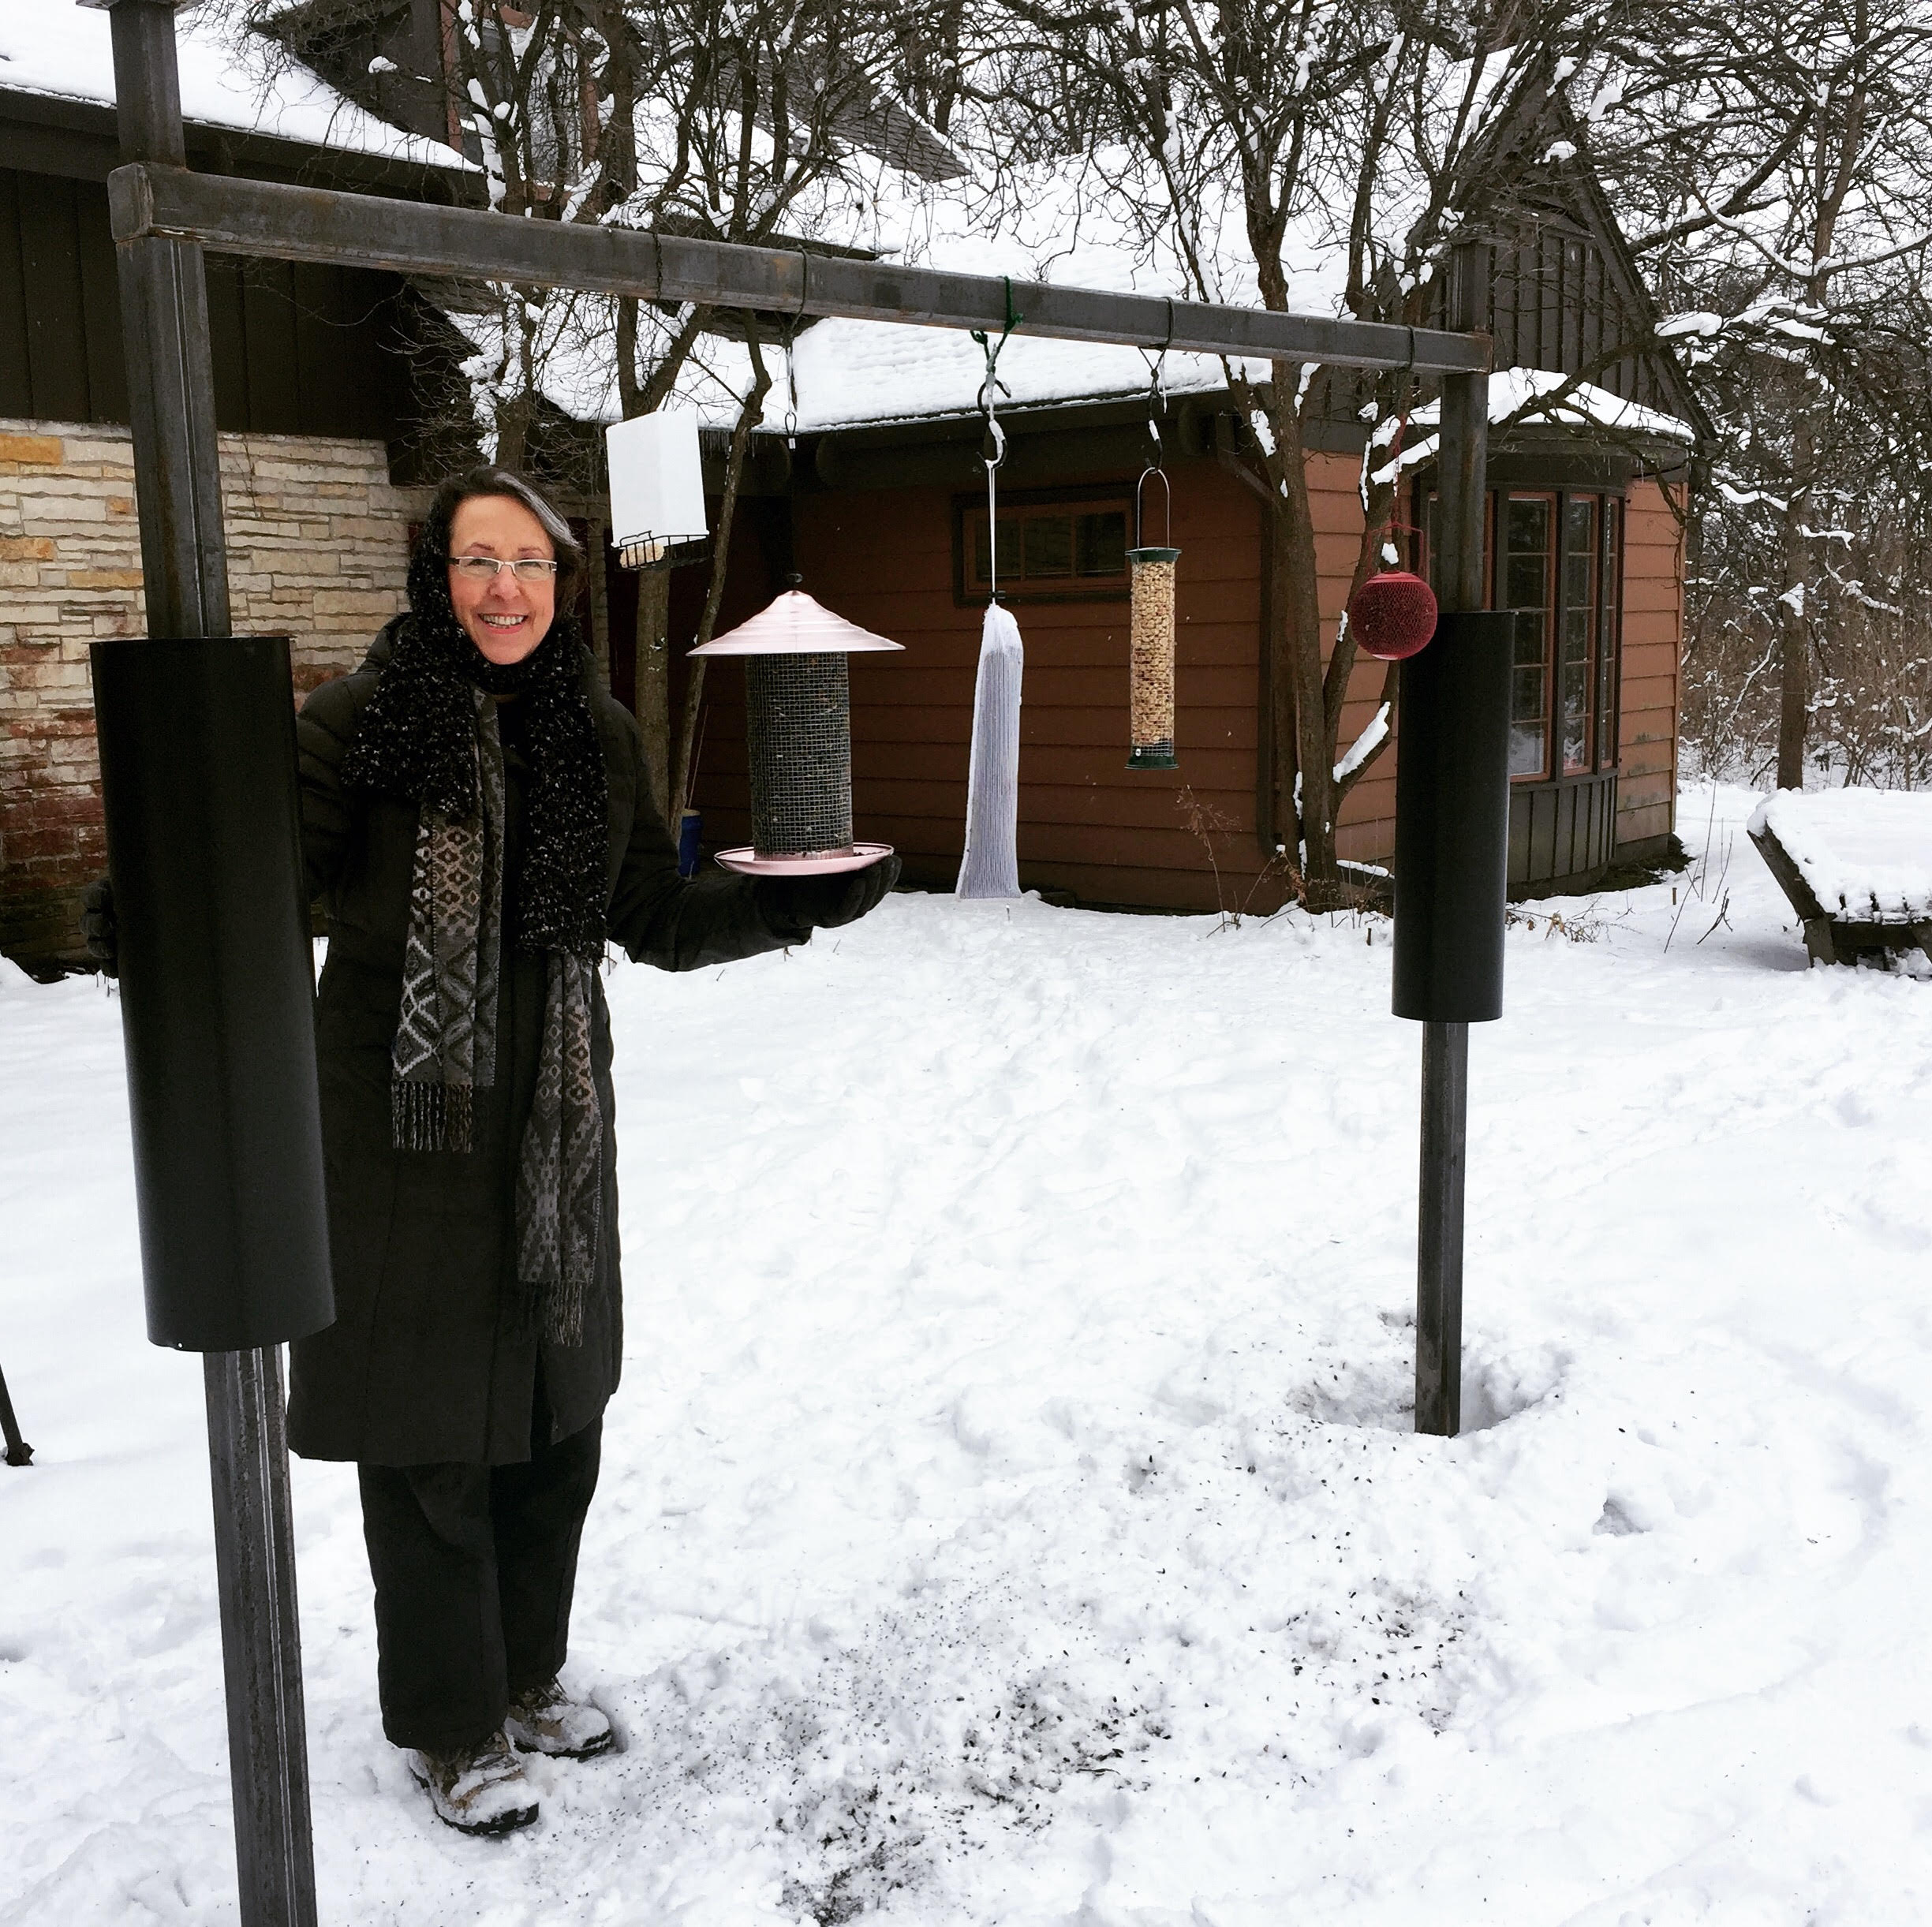 Board member Patty Oliveri feeding the birds in the winter months at Severson Dells Nature Center.